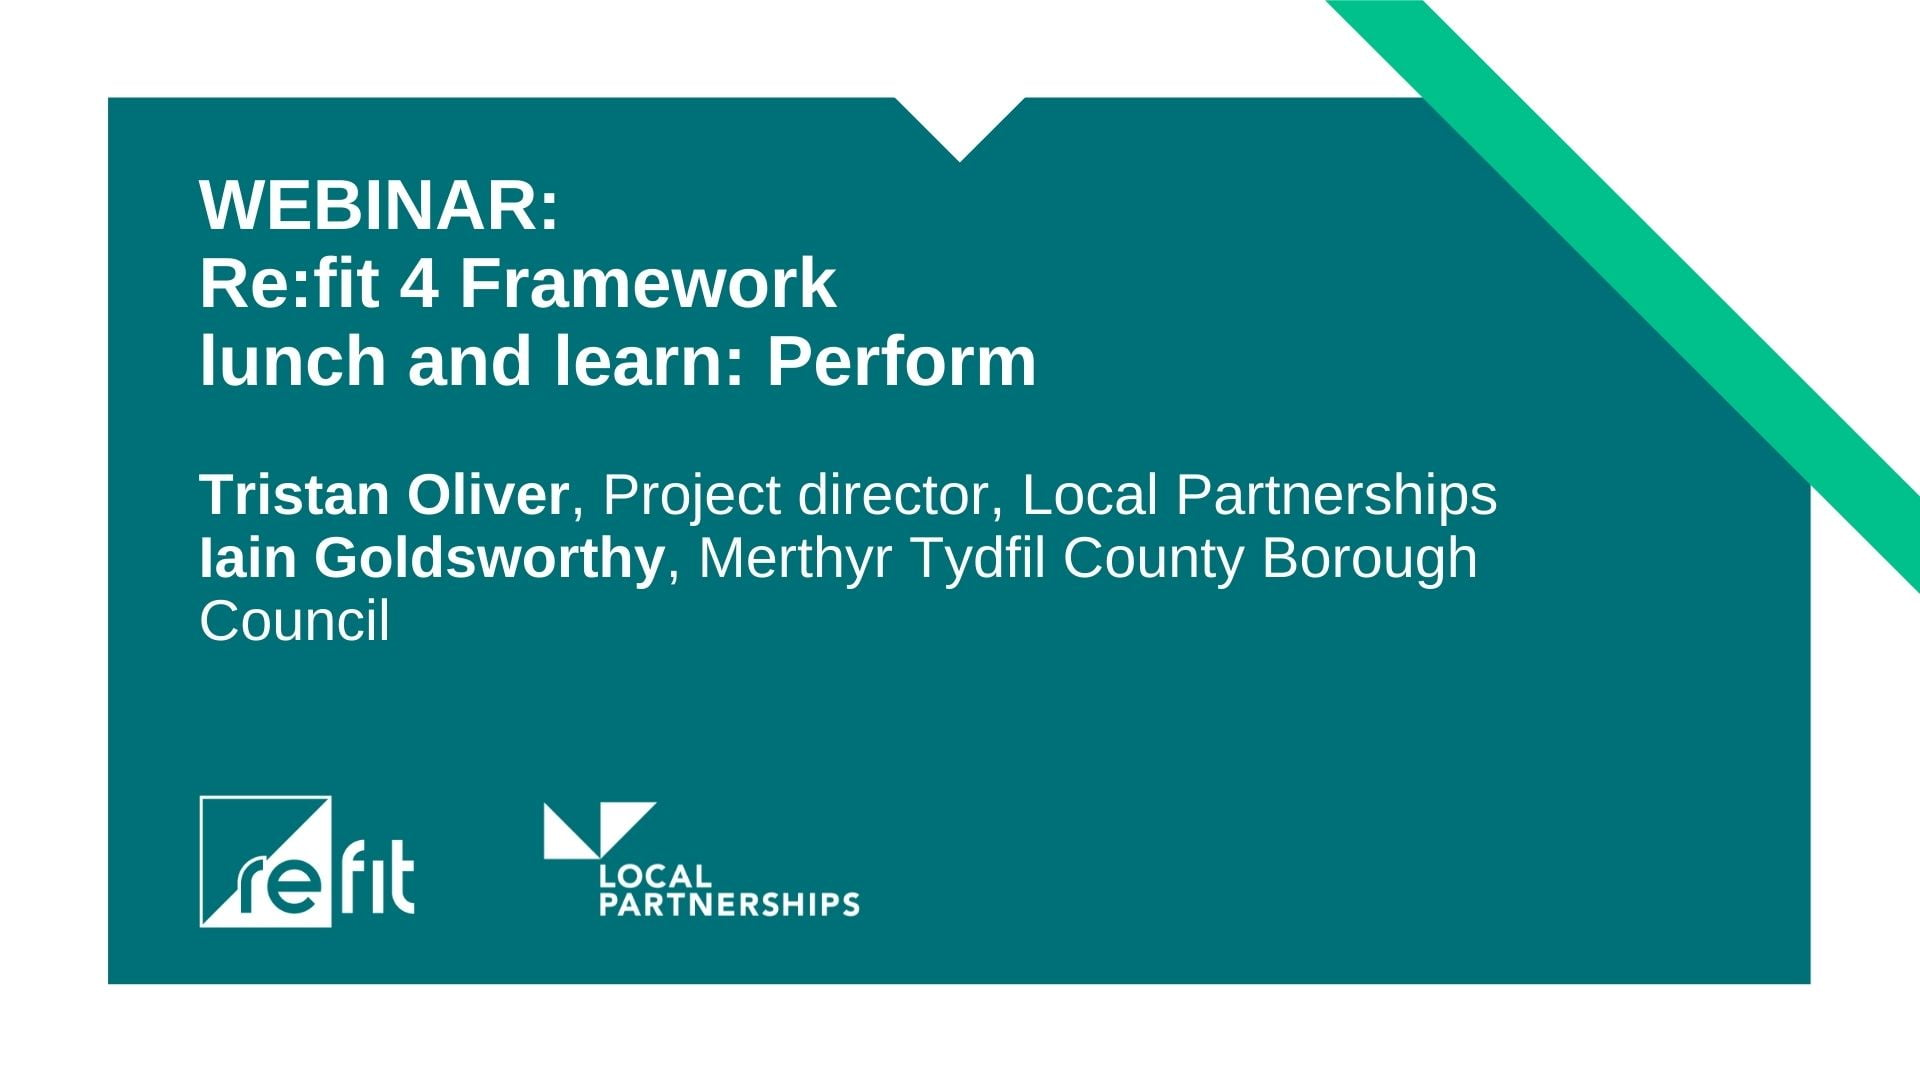 WEBINAR: Re:fit lunch and learn: Perform